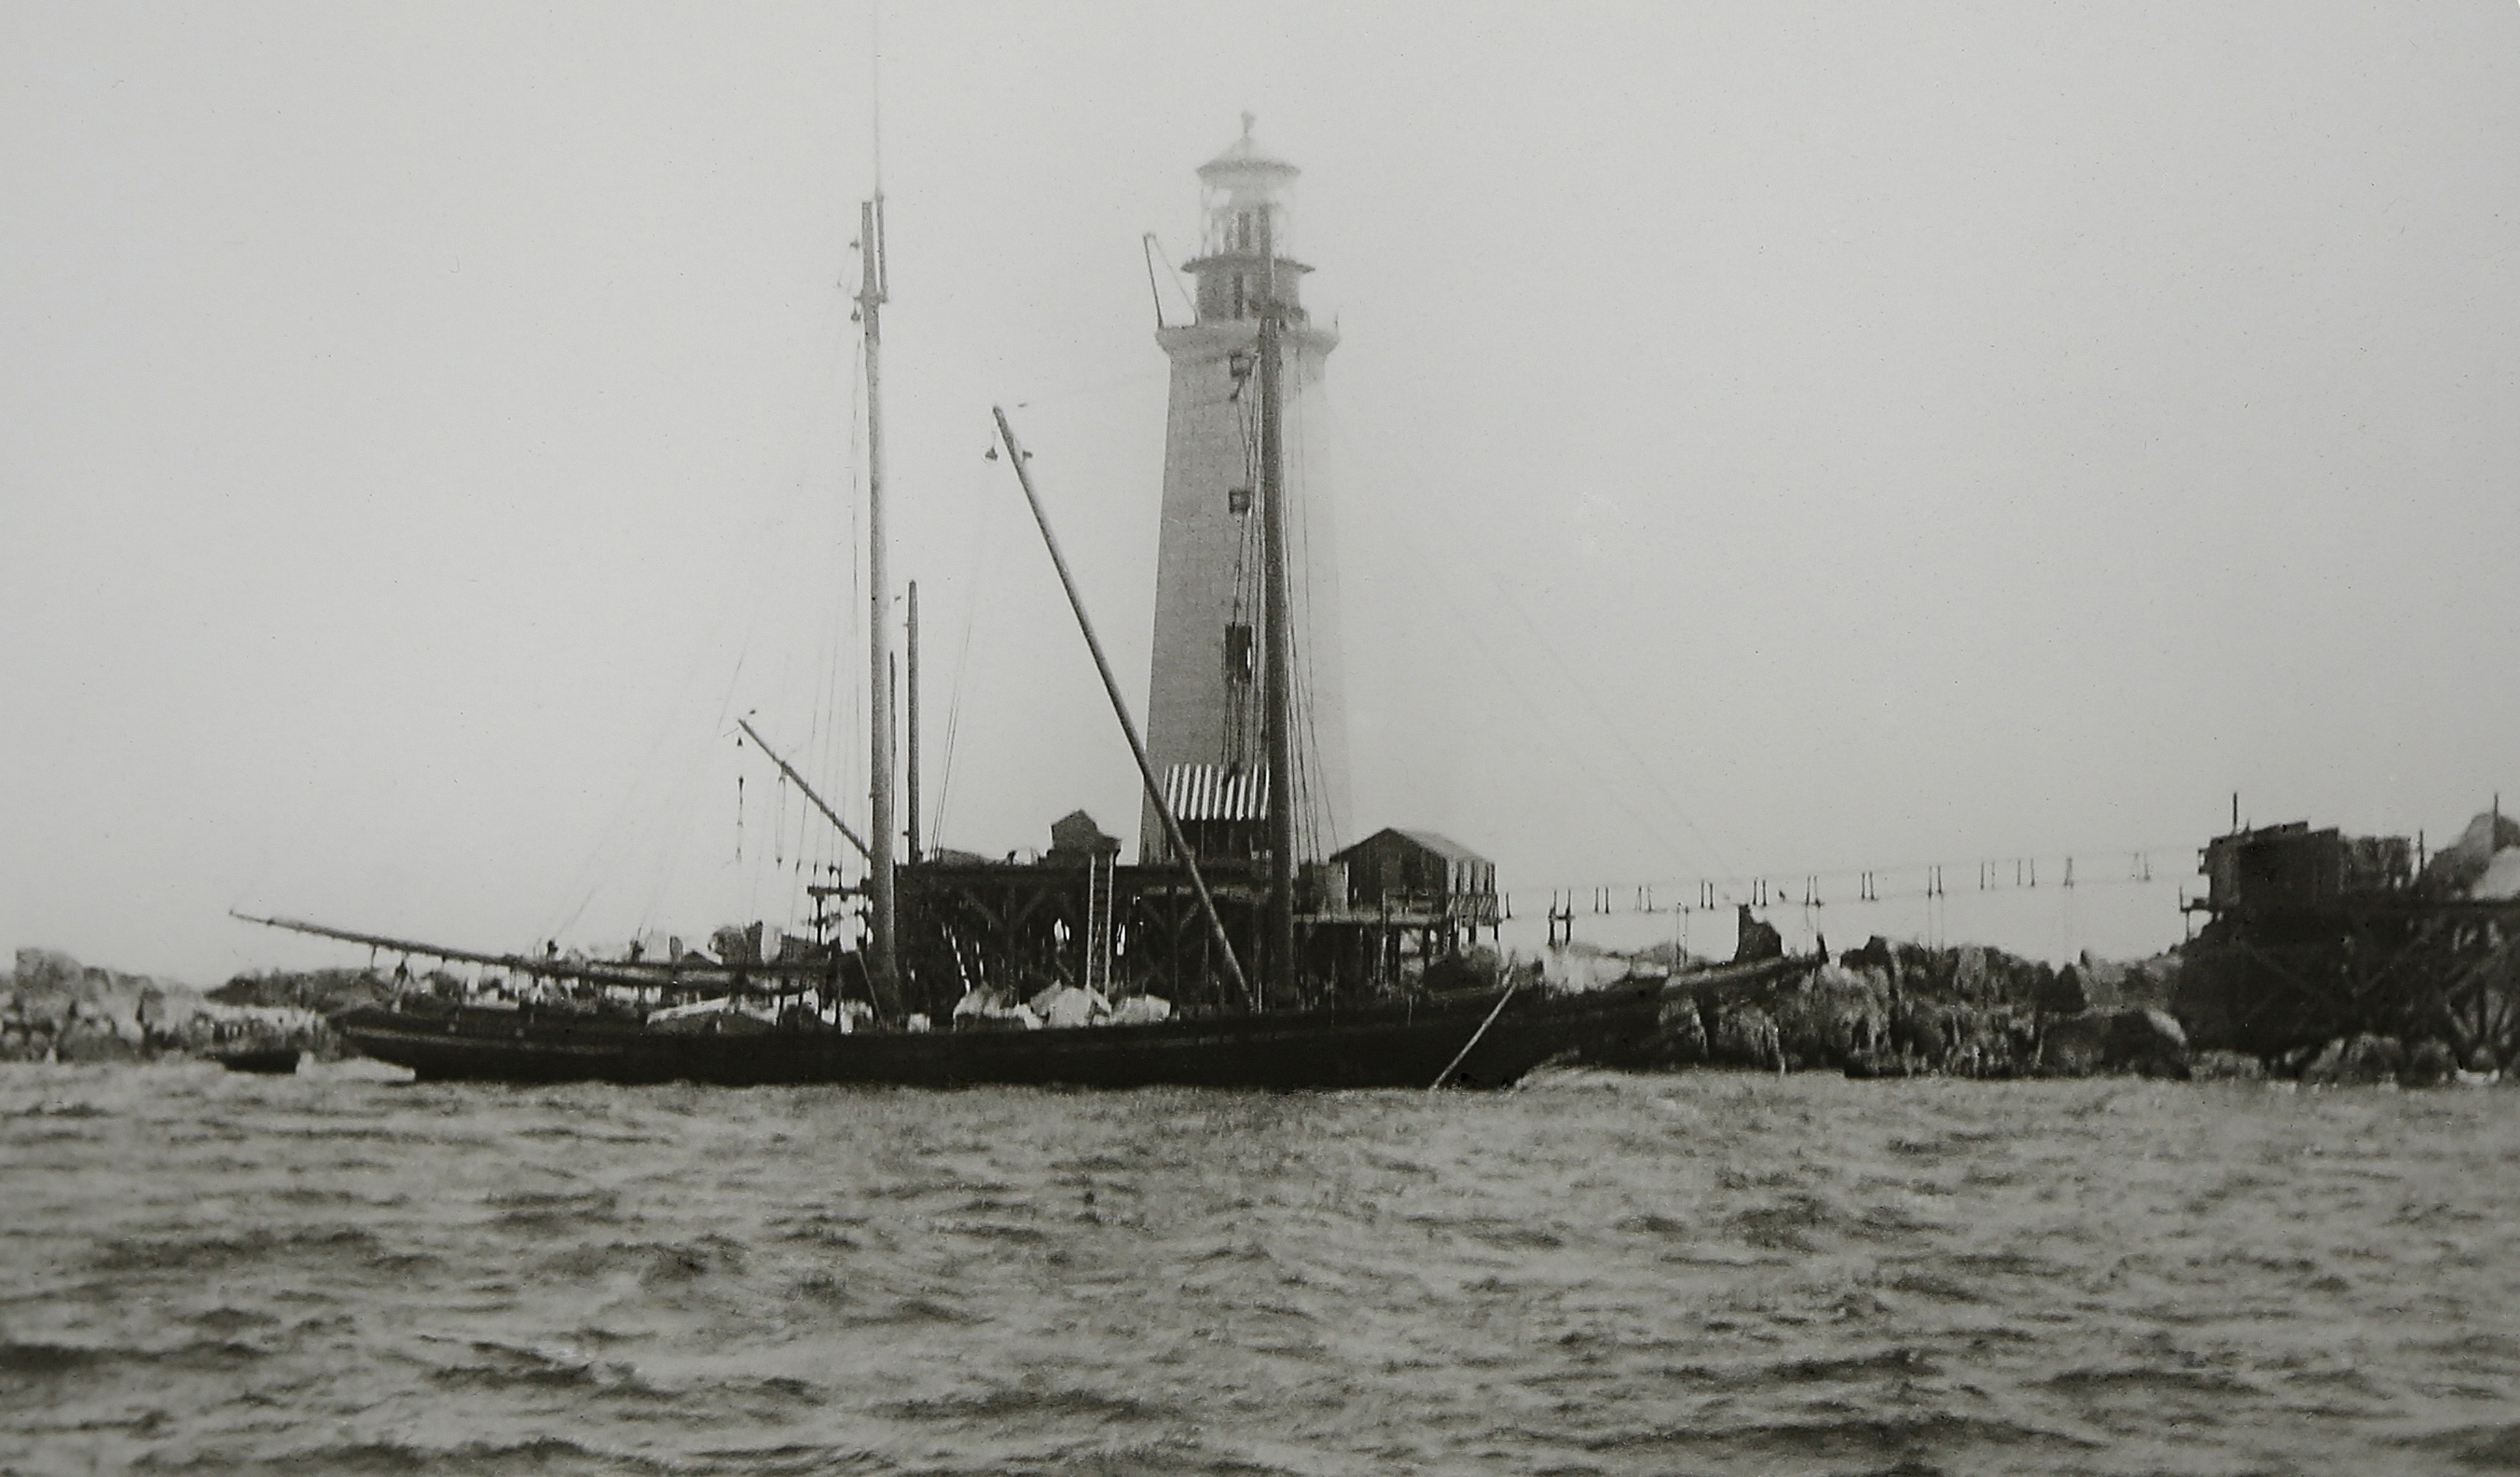 The lighthouse nears completion in mid-summer 1905. A 110-ton stone schooner delivers granite boulders to build riprap breakwaters to protect the beacon from the sea. (Photo courtesy of the Massachusetts Historical Society)